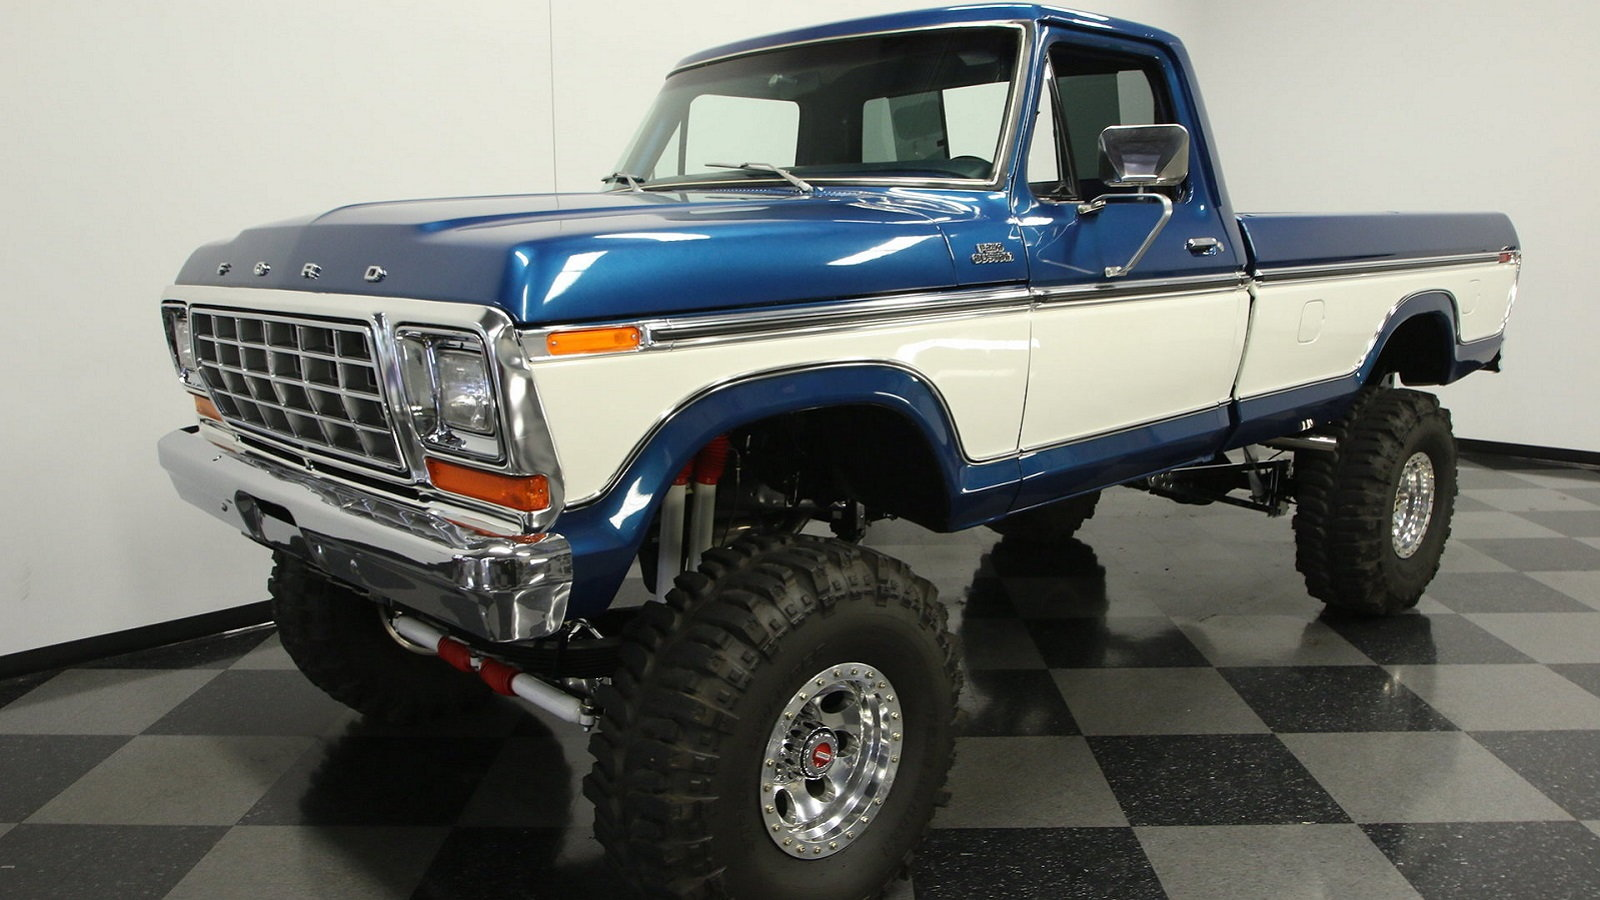 Sky High 1978 Ford F-250: Son of Bigfoot